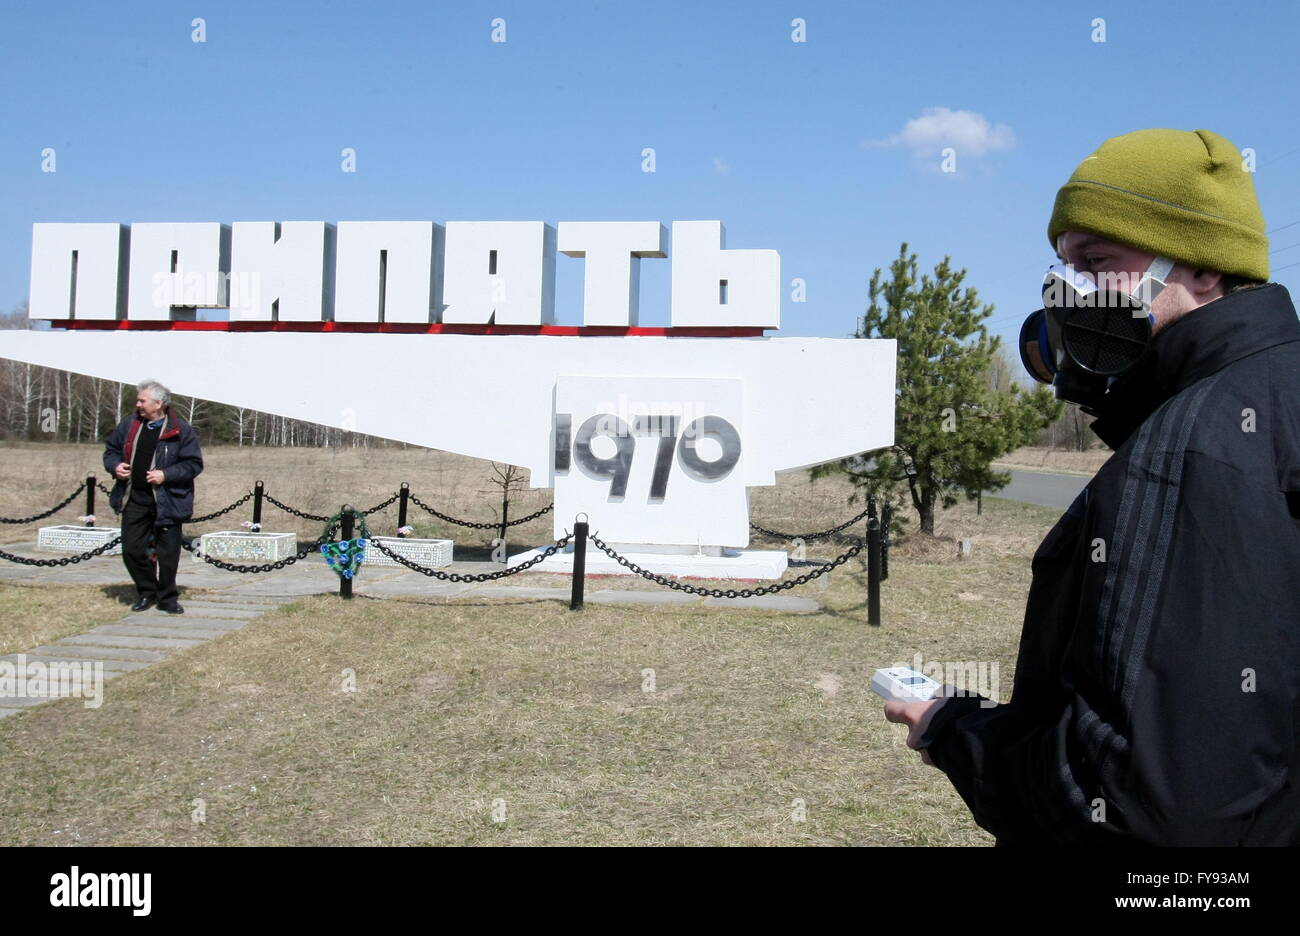 PRIPYAT, UKRAINE. Pictured in this file image is the entrance to the abandoned town of Pripyat near the Chernobyl - Stock Image